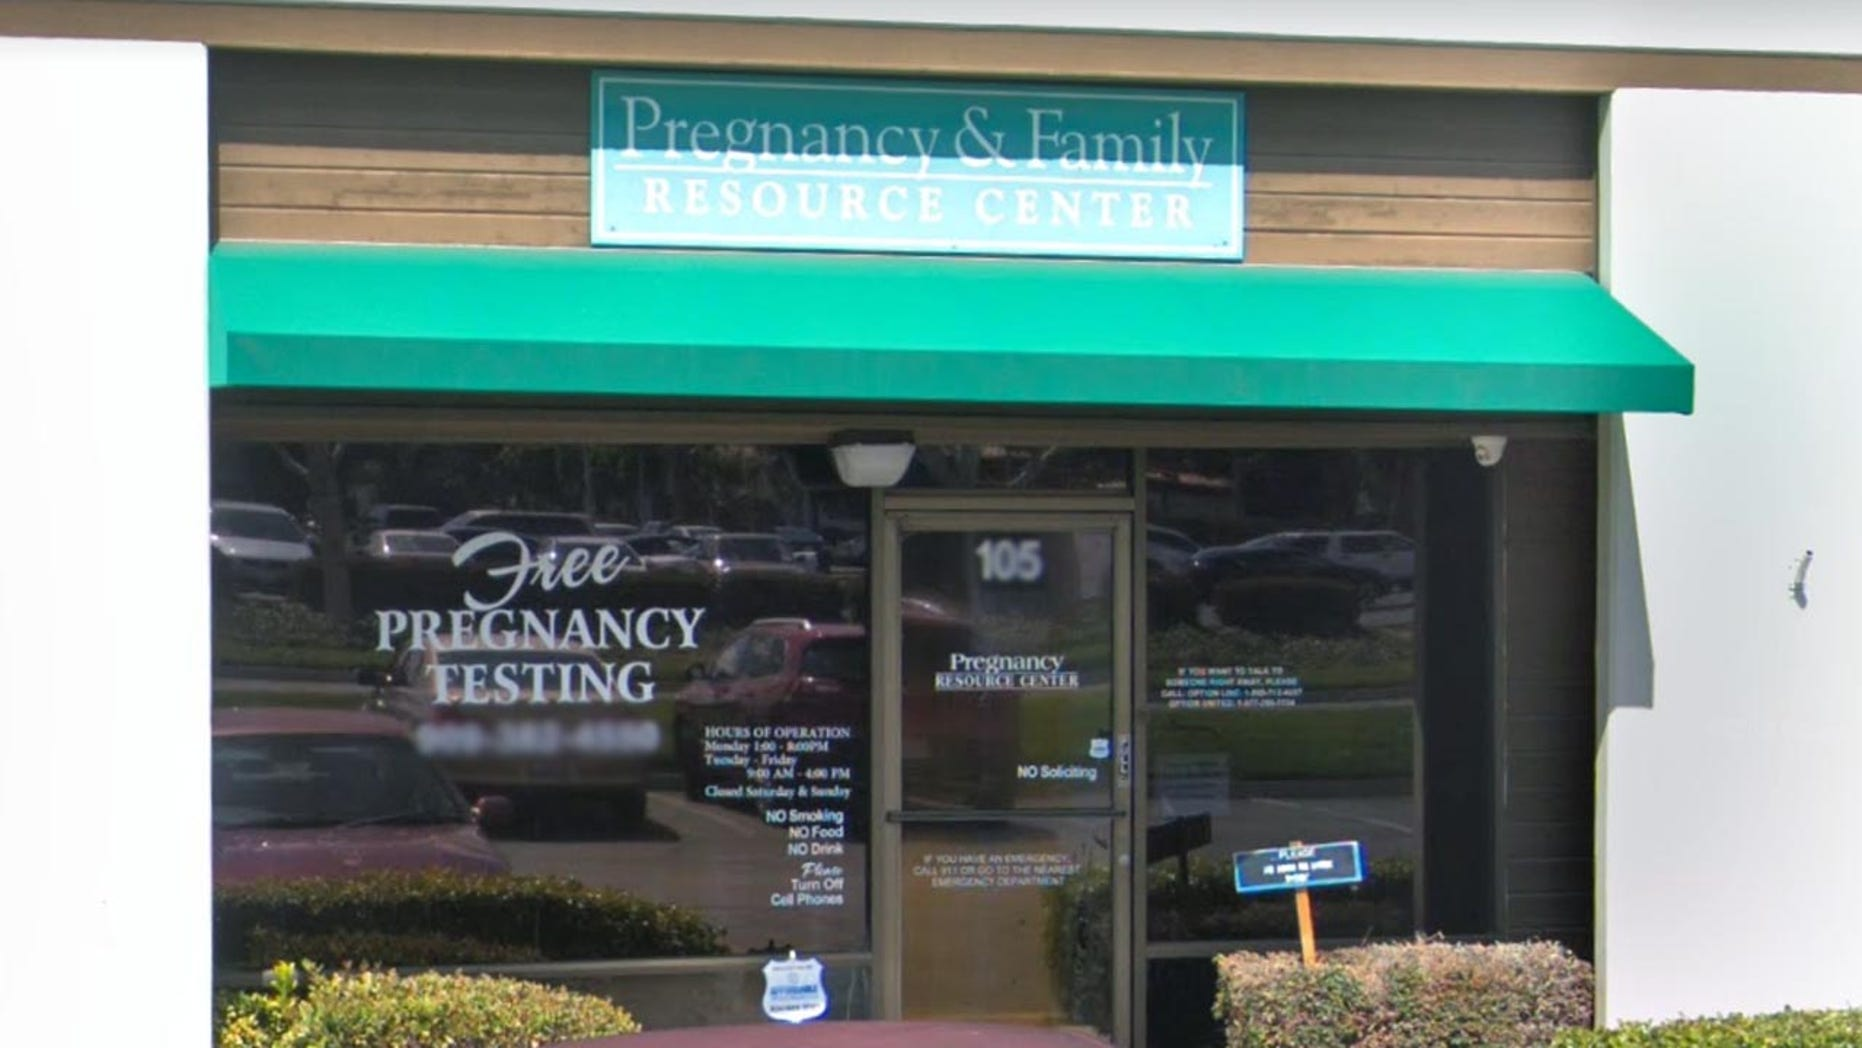 California was ordered to pay three pro-life centers, including Pregnancy & Family Resource Center, after a state law tried to force the centers to promote abortion.